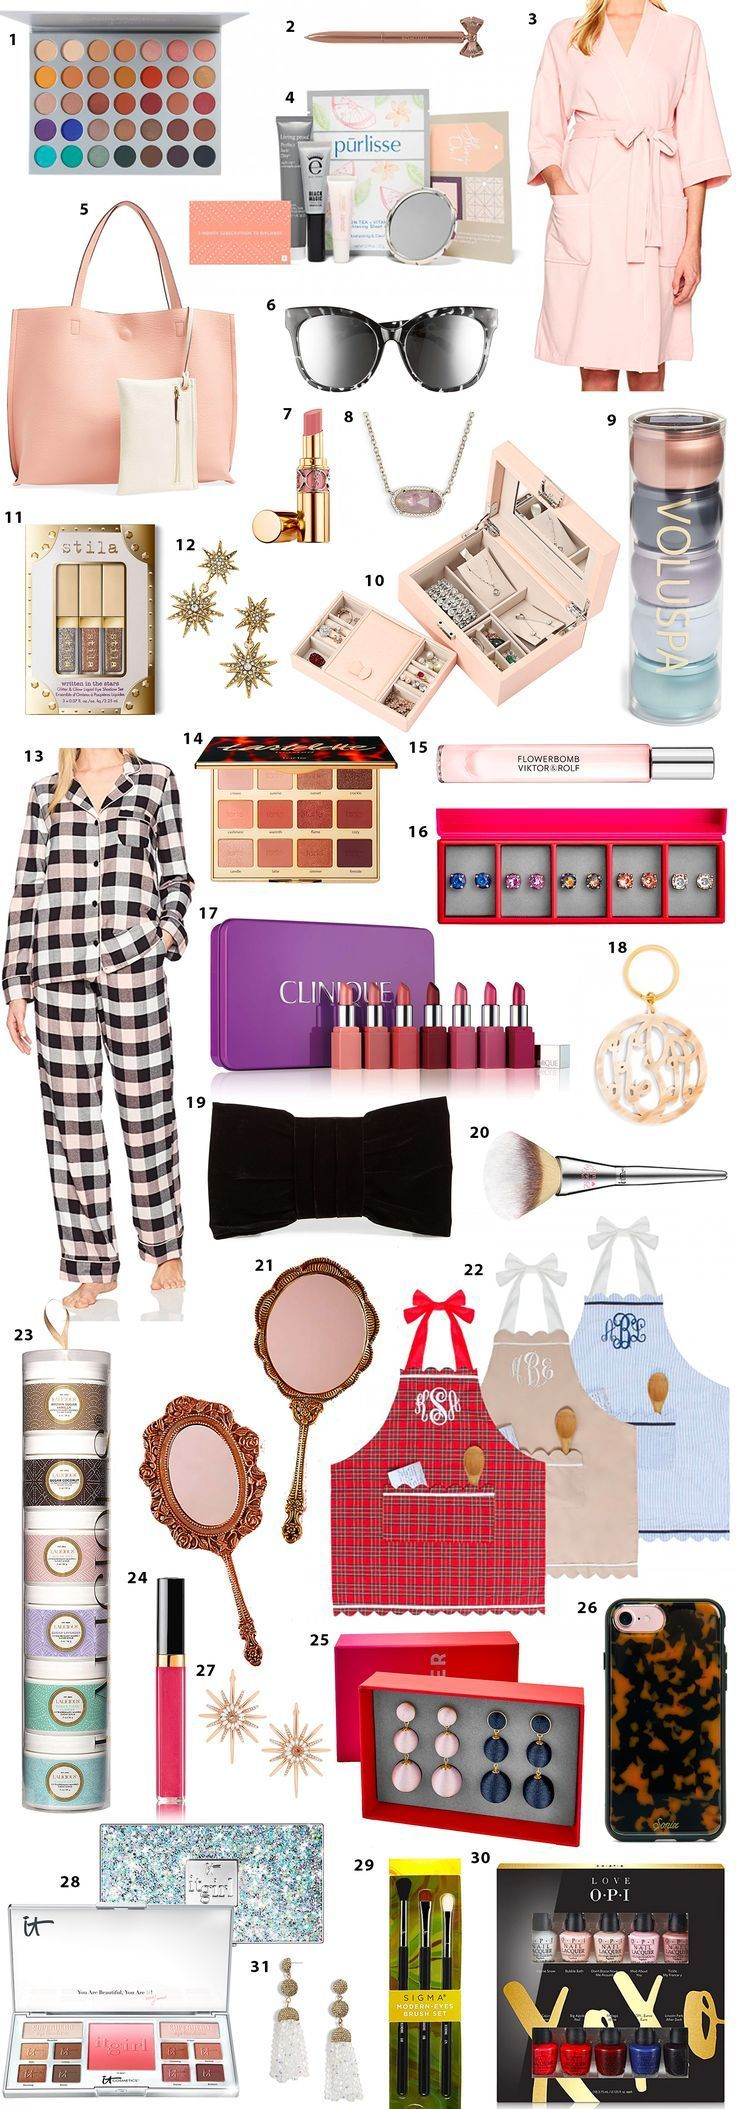 Christmas Gift Ideas for Women Under $50 | Gift Ideas On A Budget ...